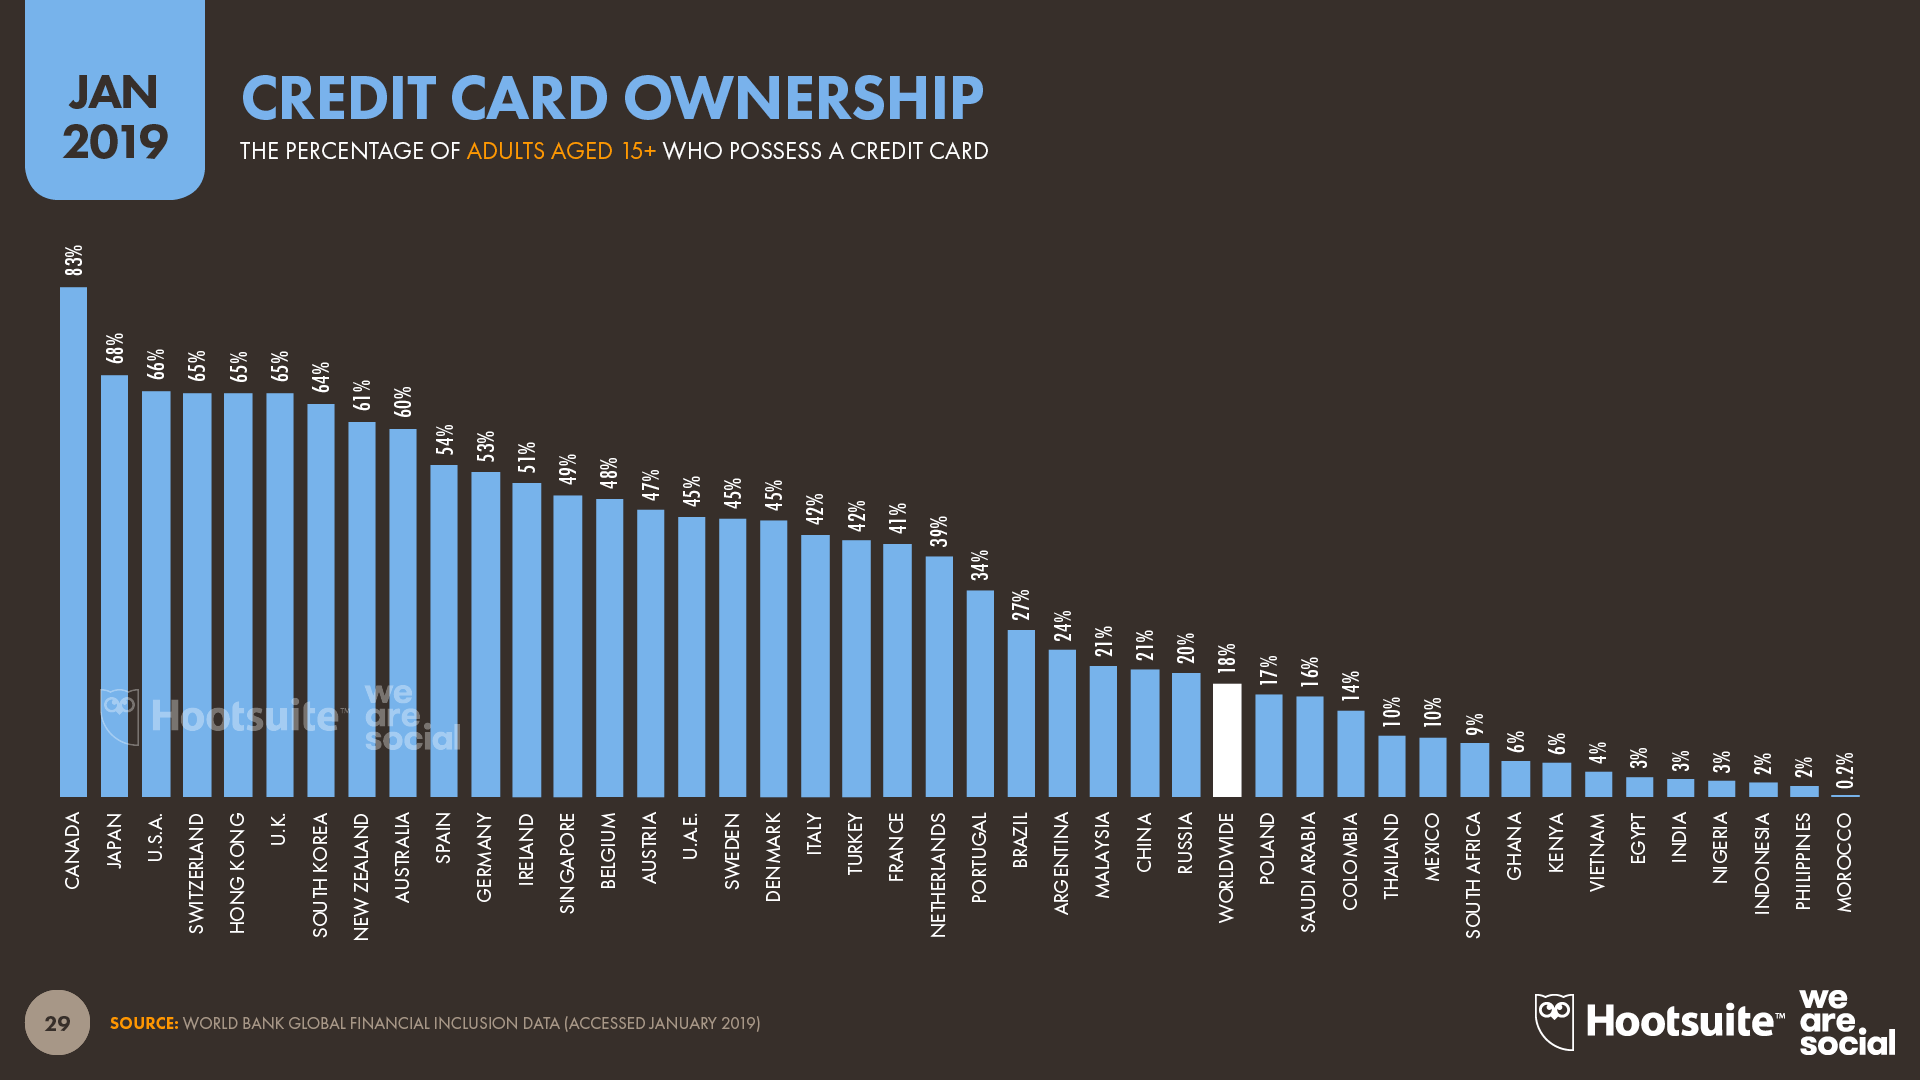 Credit Card Ownership by Country January 2019 DataReportal